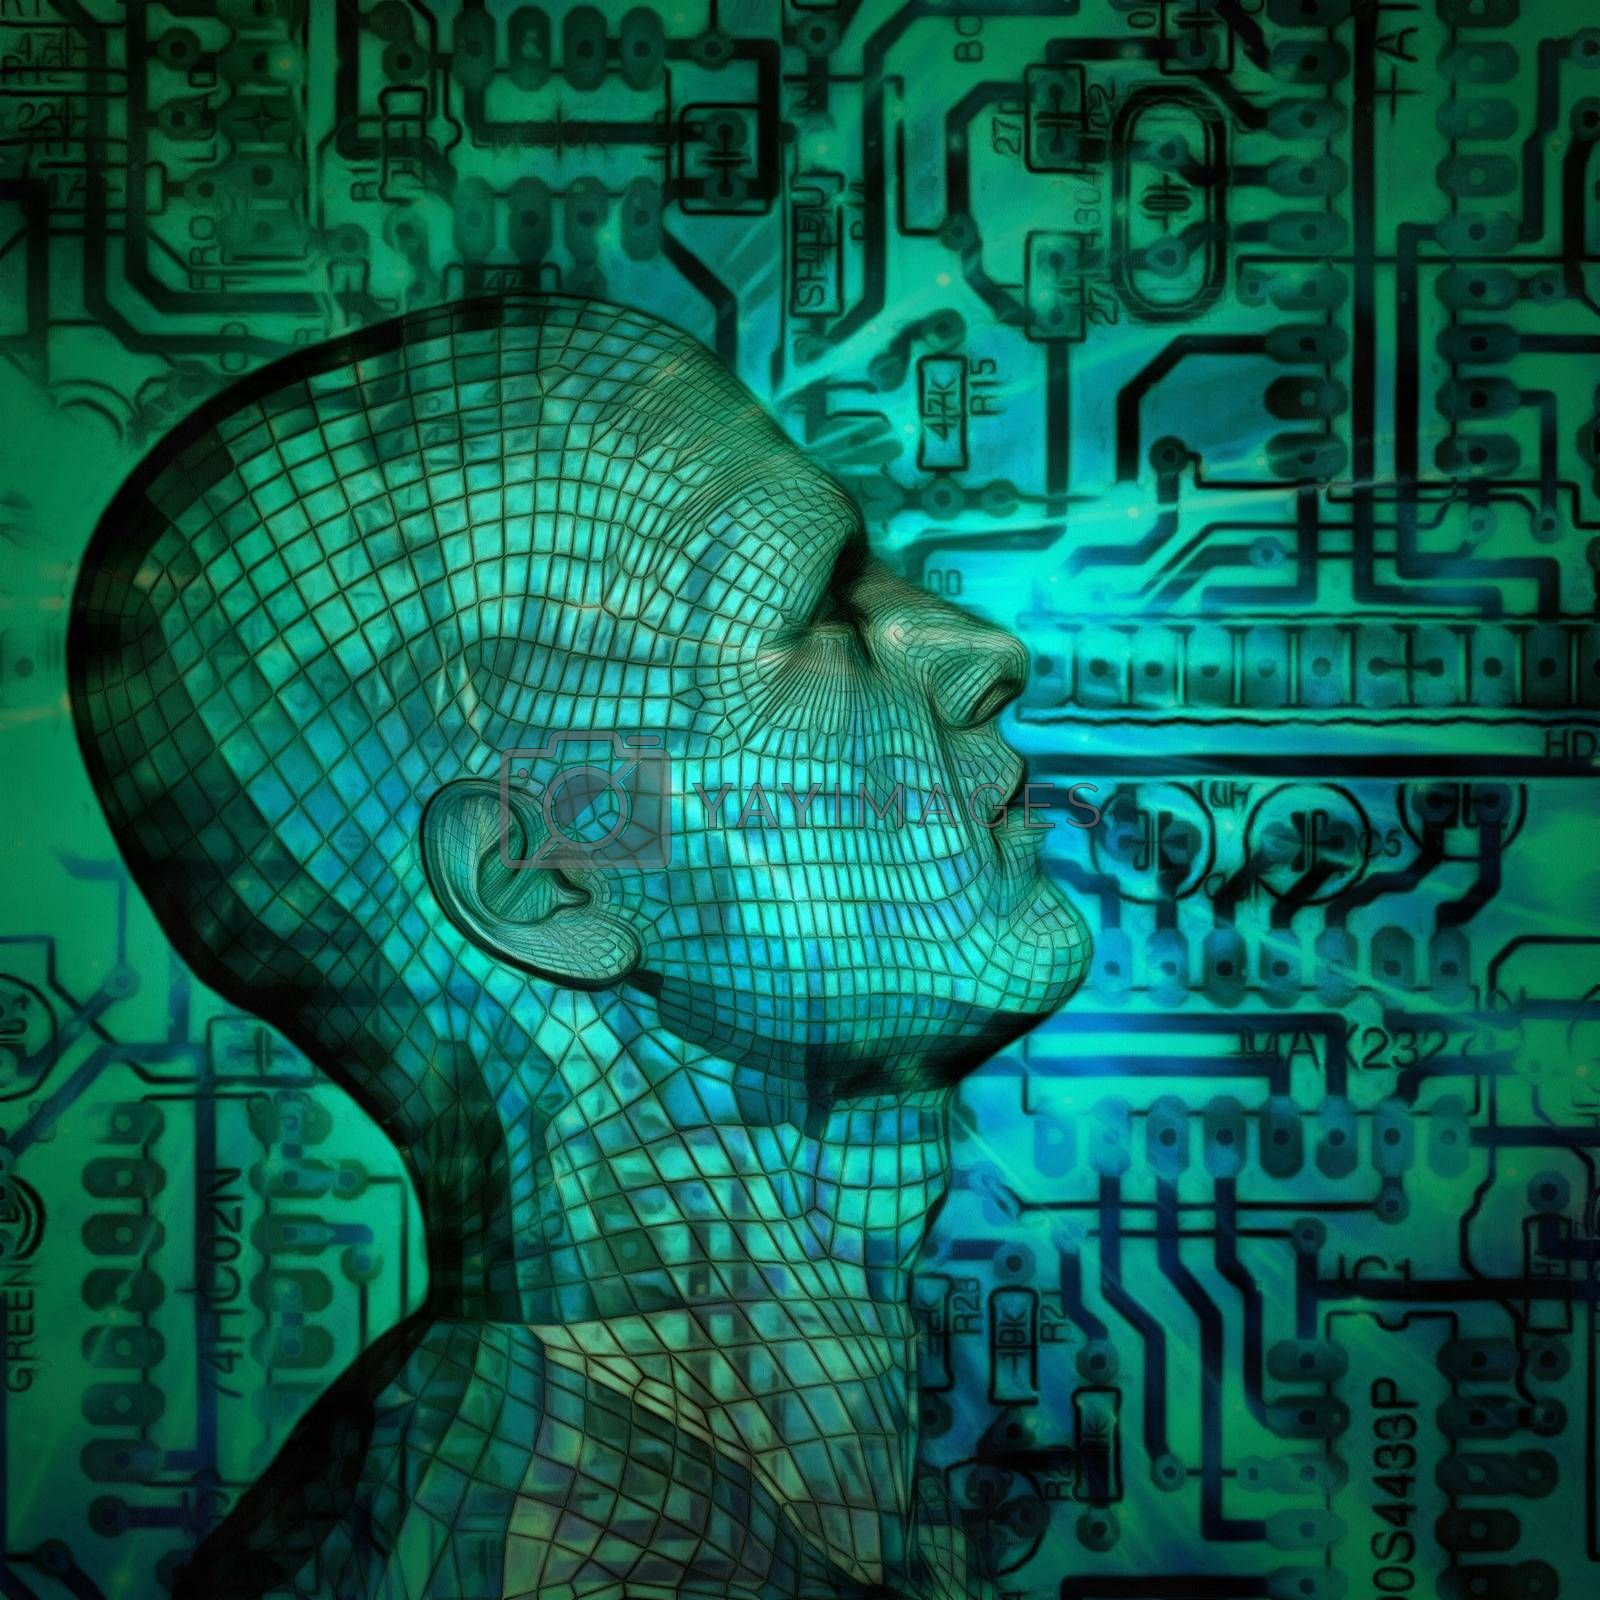 Surrealism. Cyborg man head with grid pattern, circuit board on a background.